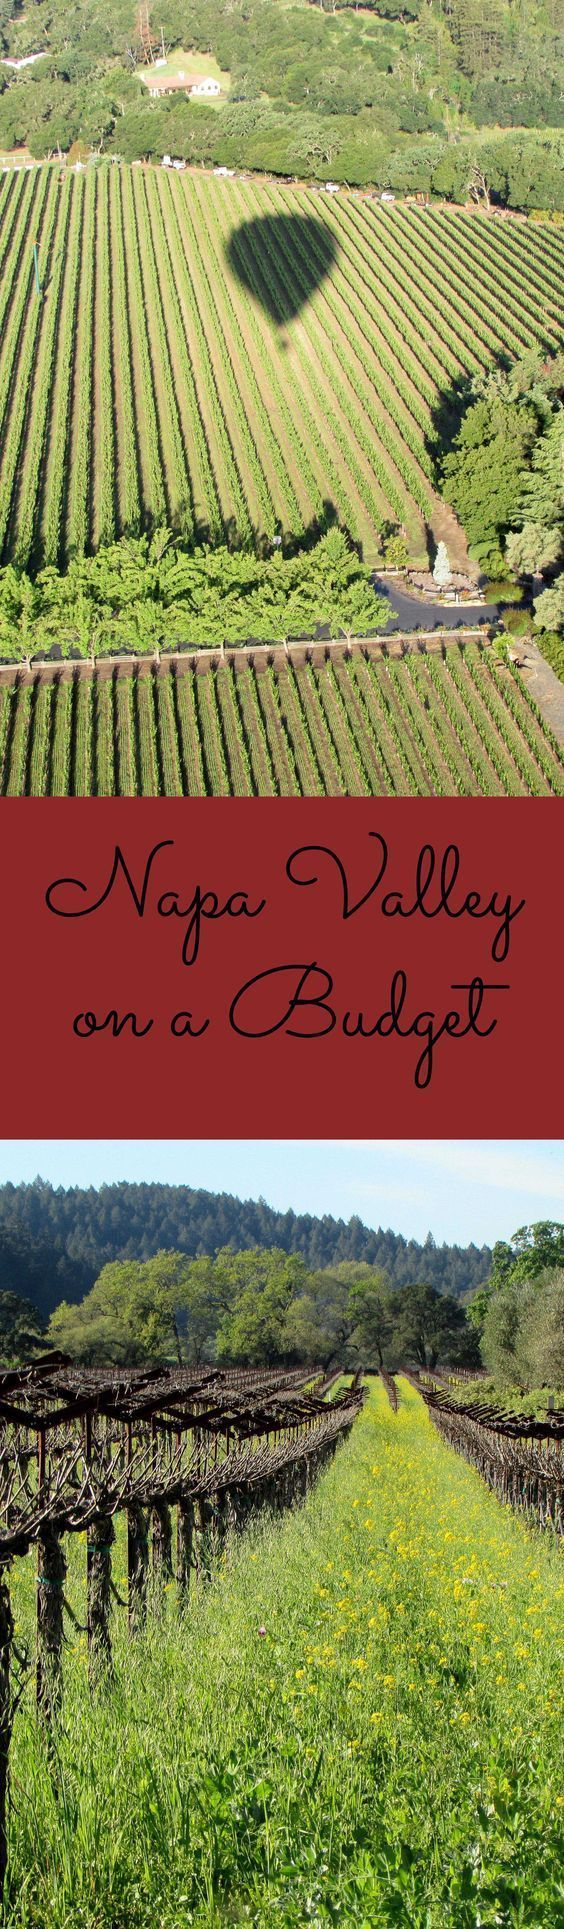 Tips For Wine Tasting In Napa On A Budget Napa Winetasting Budgettips Traveldestinationsusanapavalley Napa Trip Napa Valley Trip Usa Travel Destinations